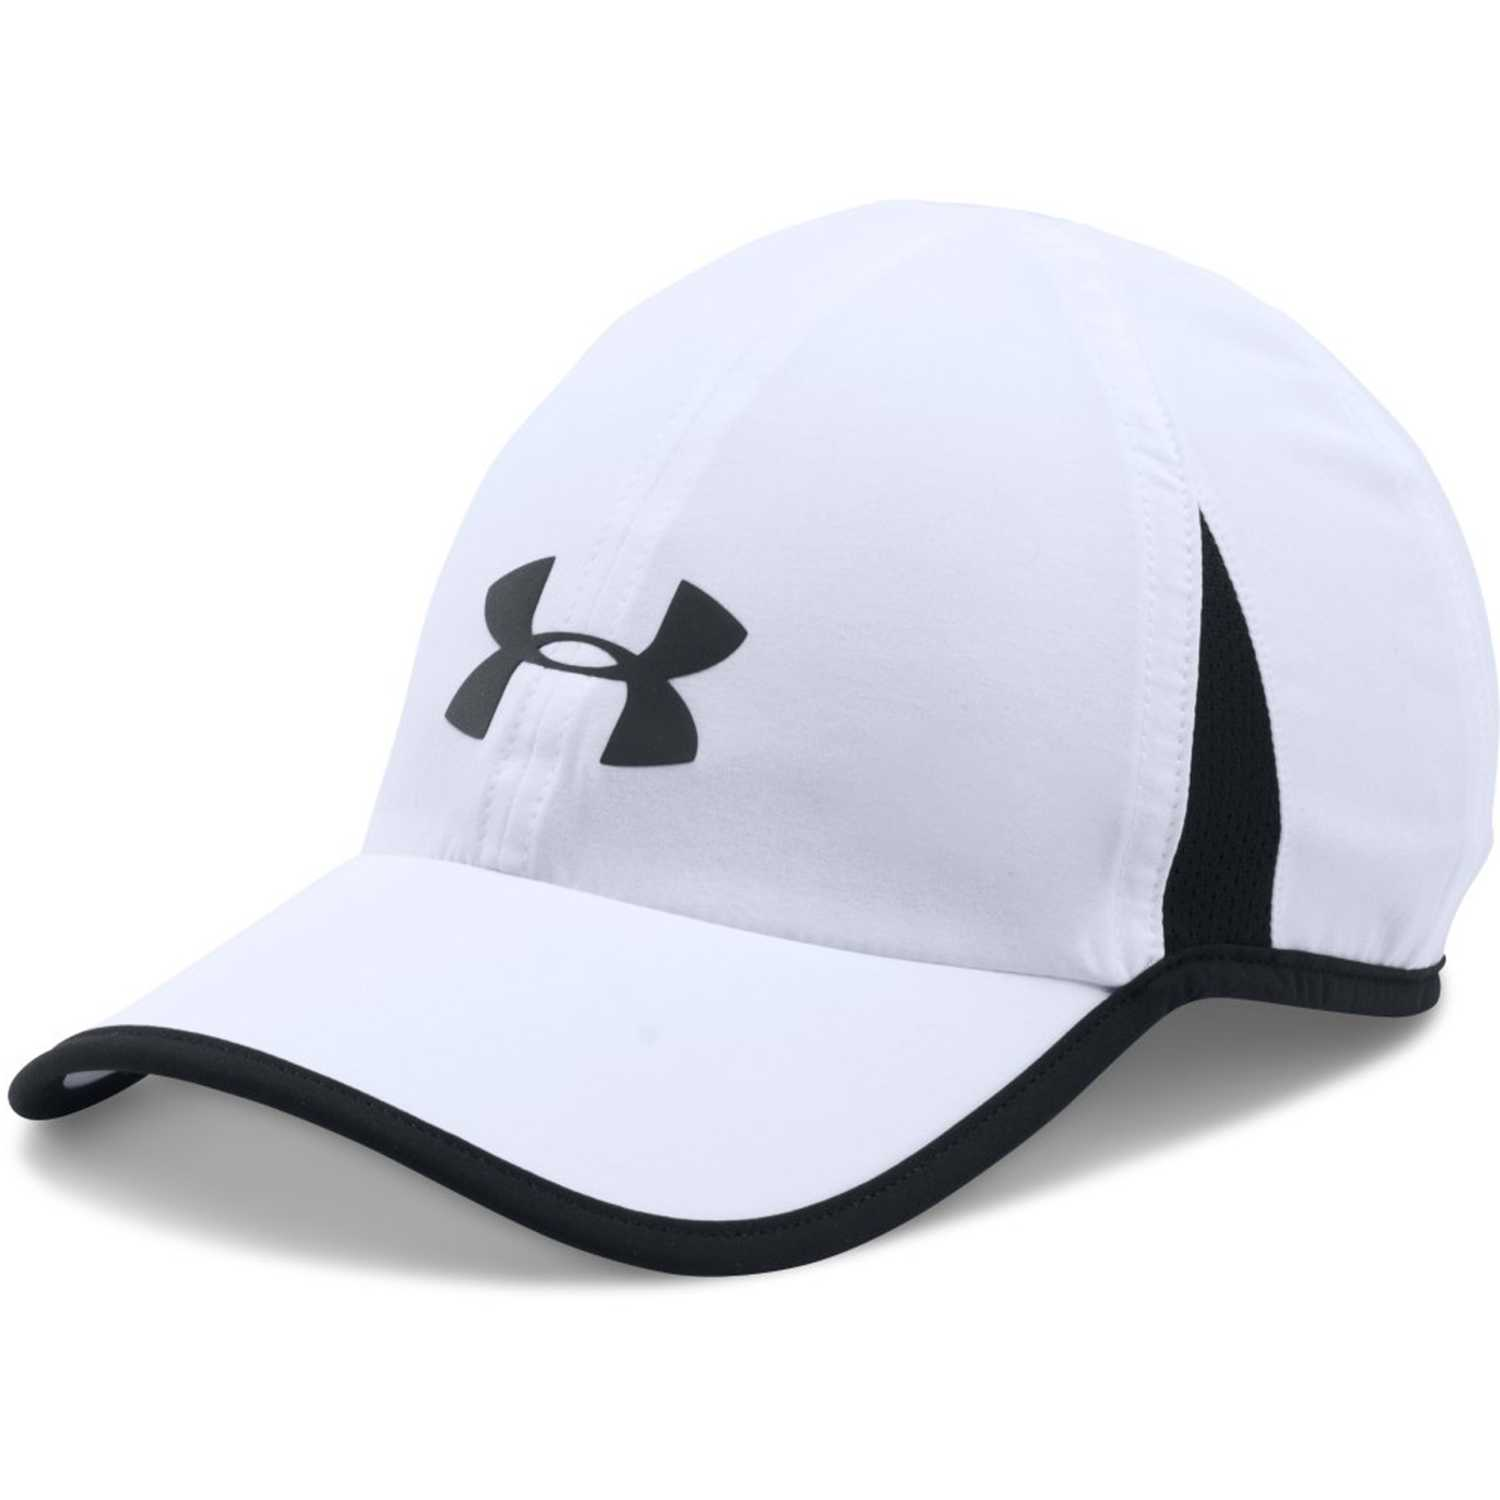 Gorro de Hombre Under Armour Blanco   negro men s shadow cap 4.0 ... b5a610523db